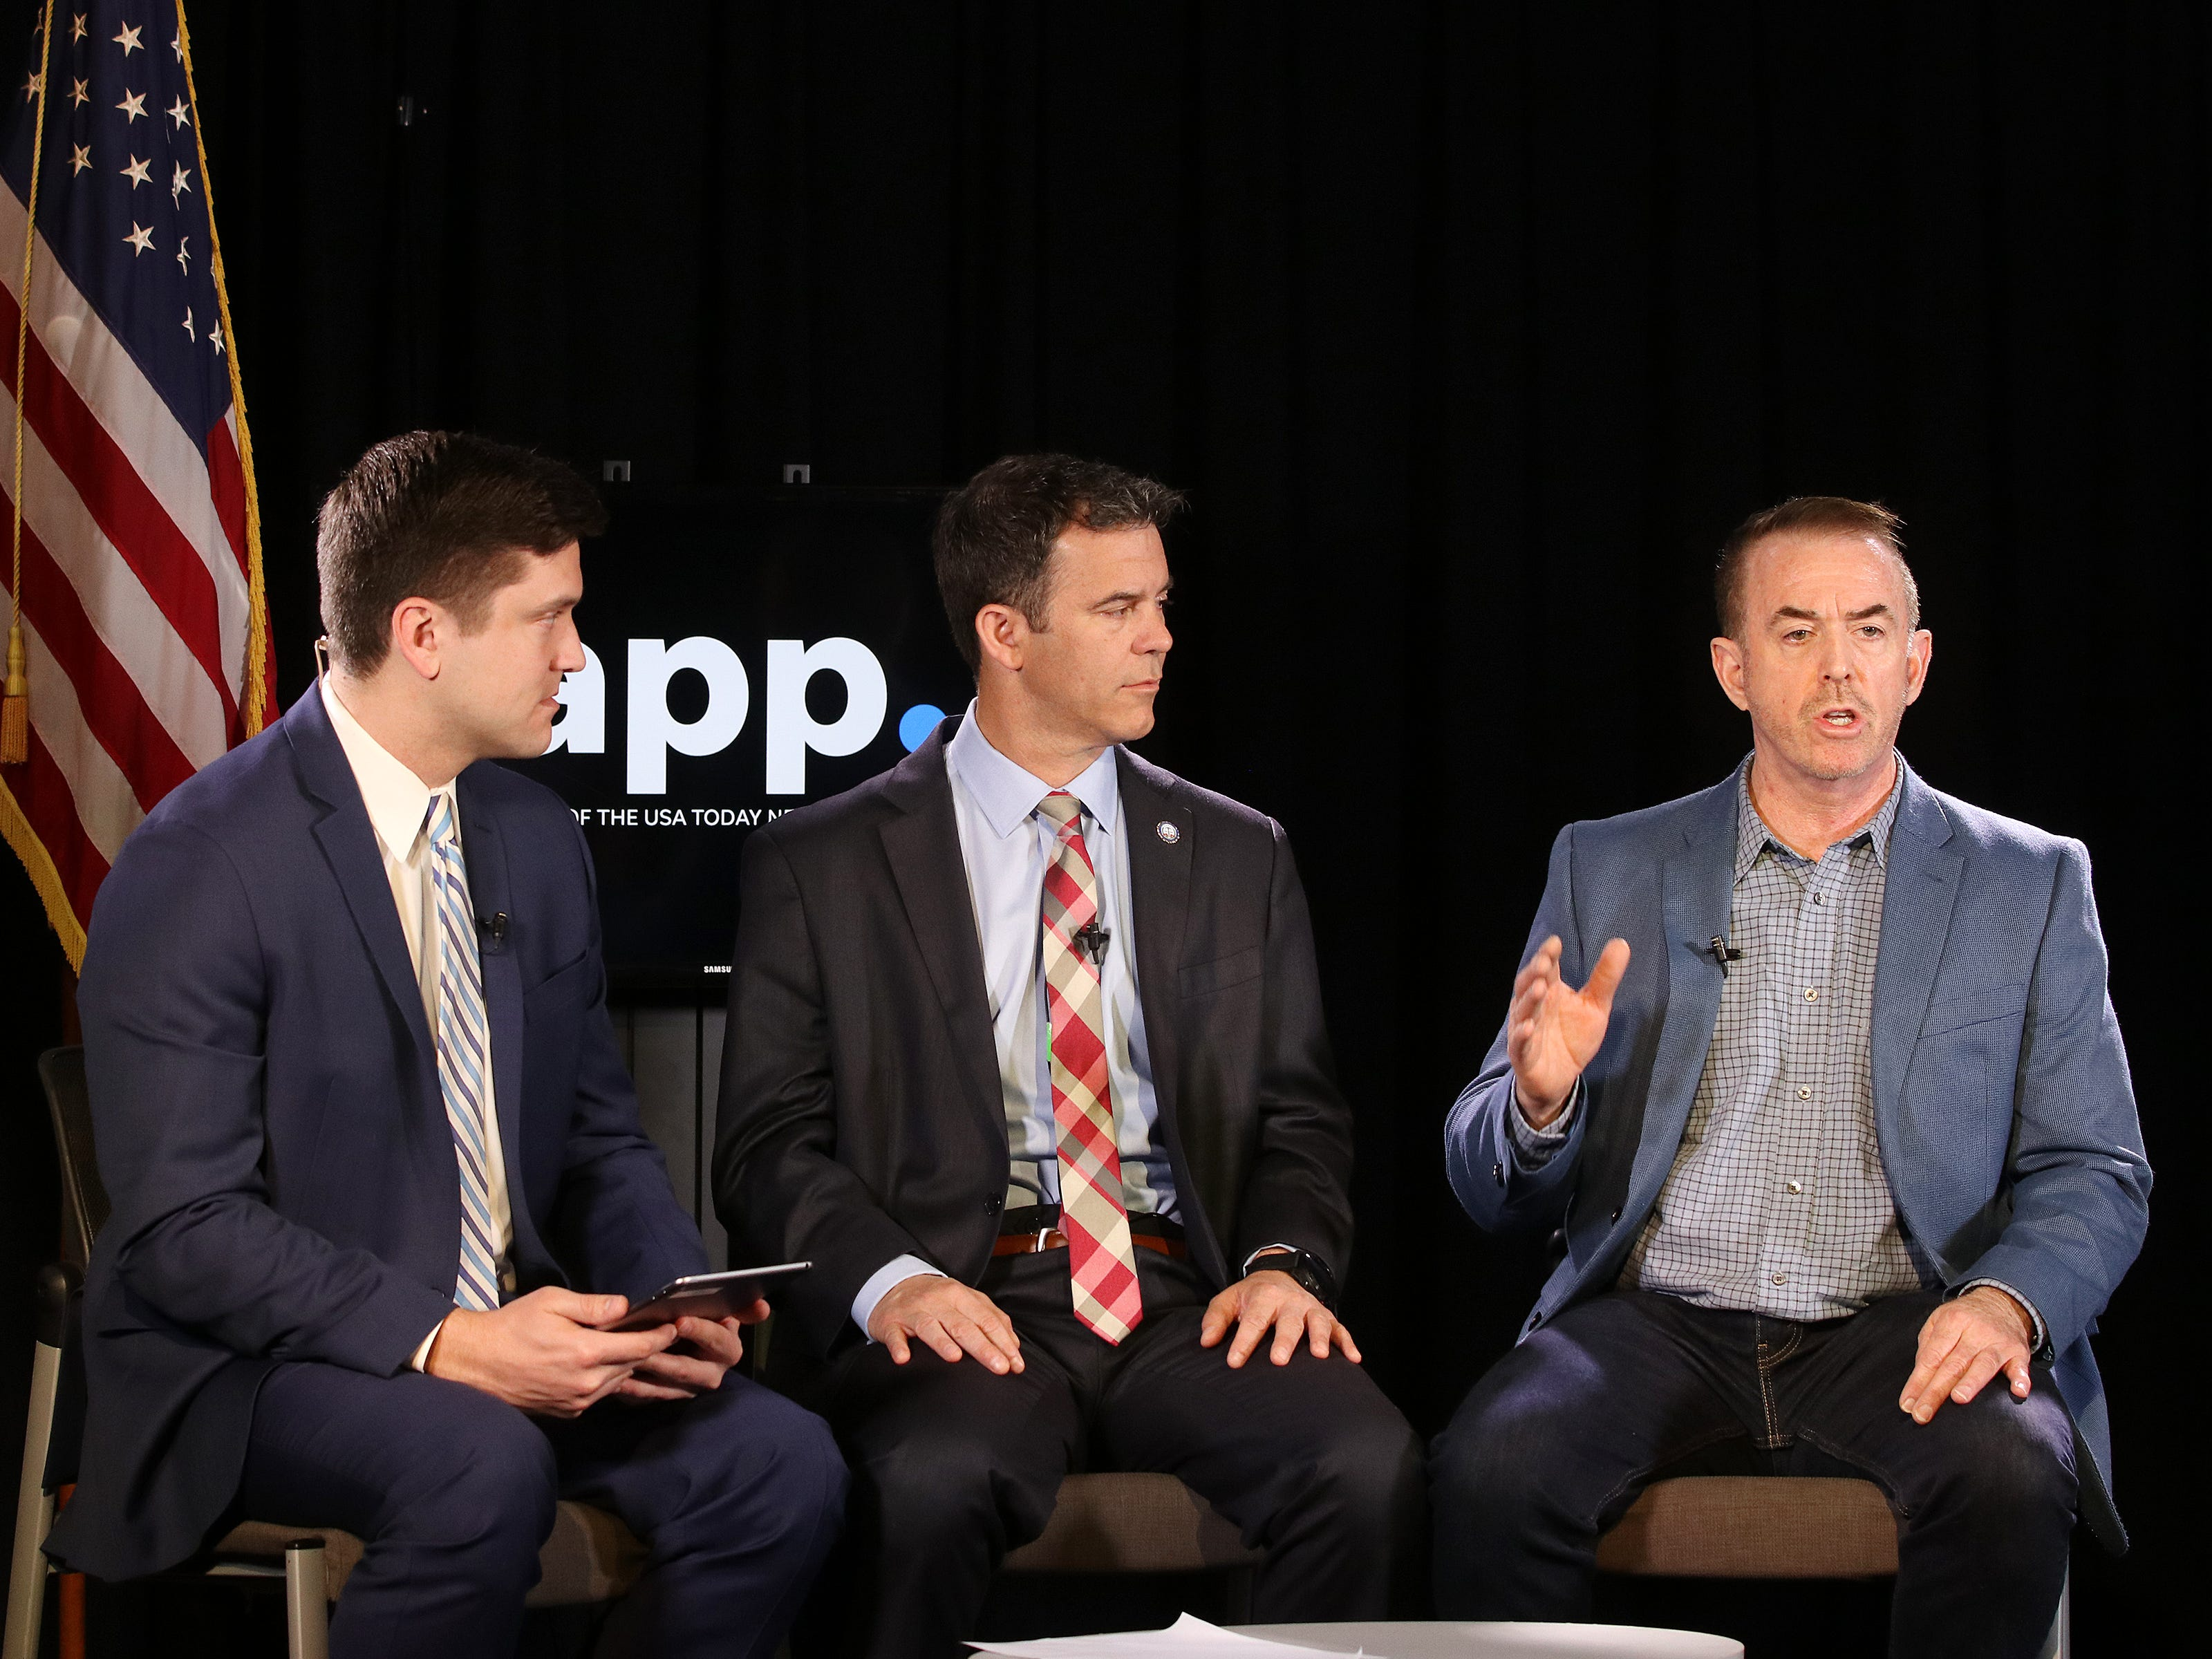 The Asbury Park Press, part of USA TODAY NETWORK, sits down with Monmouth County Prosecutor Christopher J. Gramiccioni to ask the prosecutor your questions about police involved shootings and fentanyl at the Jersey Shore at the Asbury Park Press in Neptune, NJ Thursday May 16, 2019. (left) Ryan Ross, host, and (right) Ken Serrano, investigations reporter, ask the prosecutor about fentanyl at the Jersey Shore.